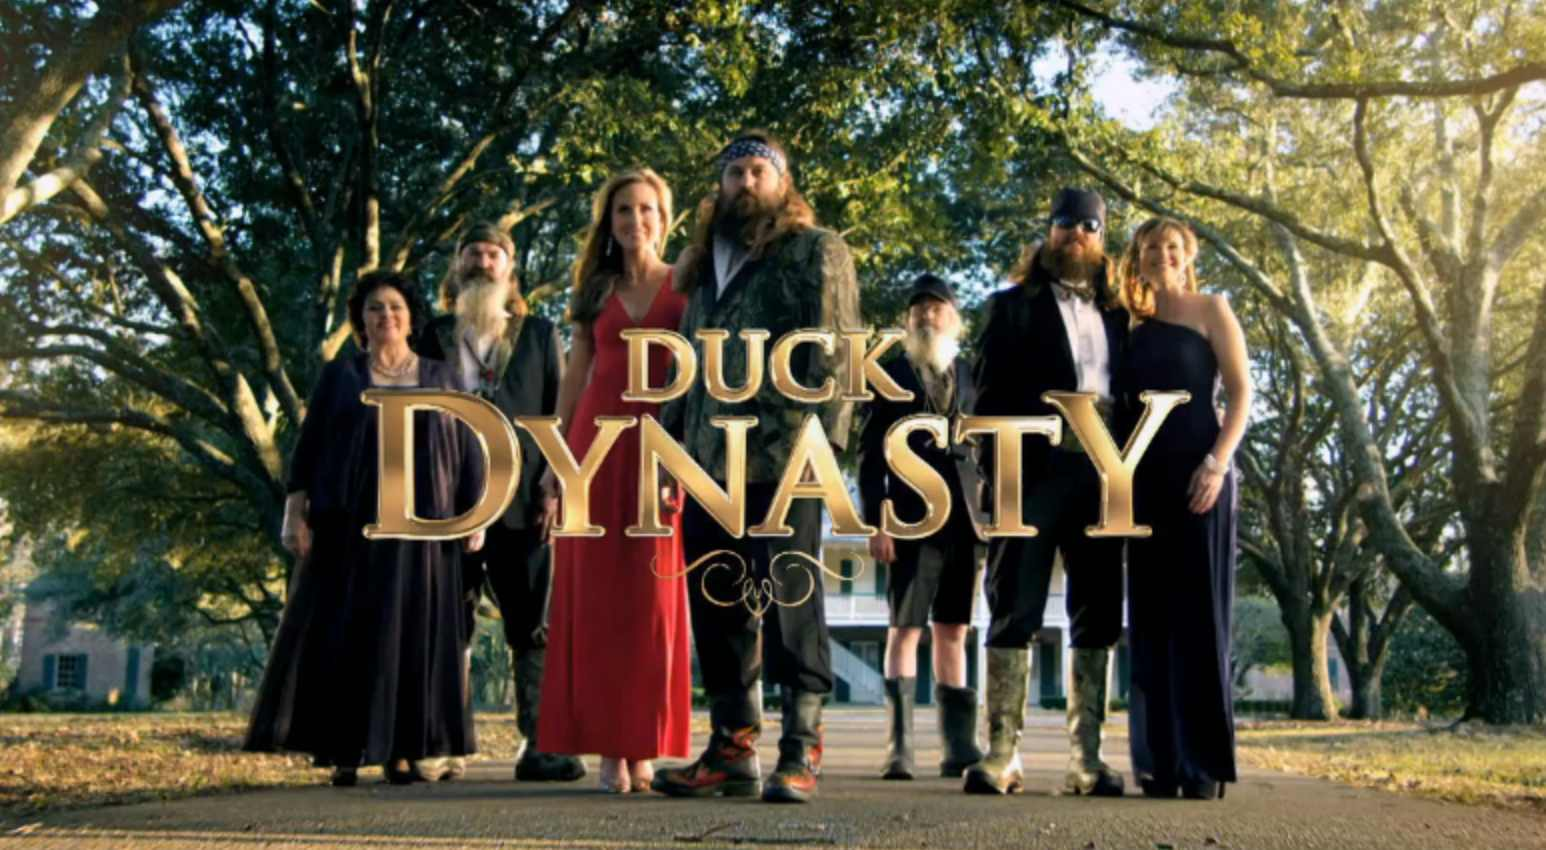 Join the online Argument: The sad thing about Duck Dynasty is that they don't realize the only reason people watch it is to laugh at them